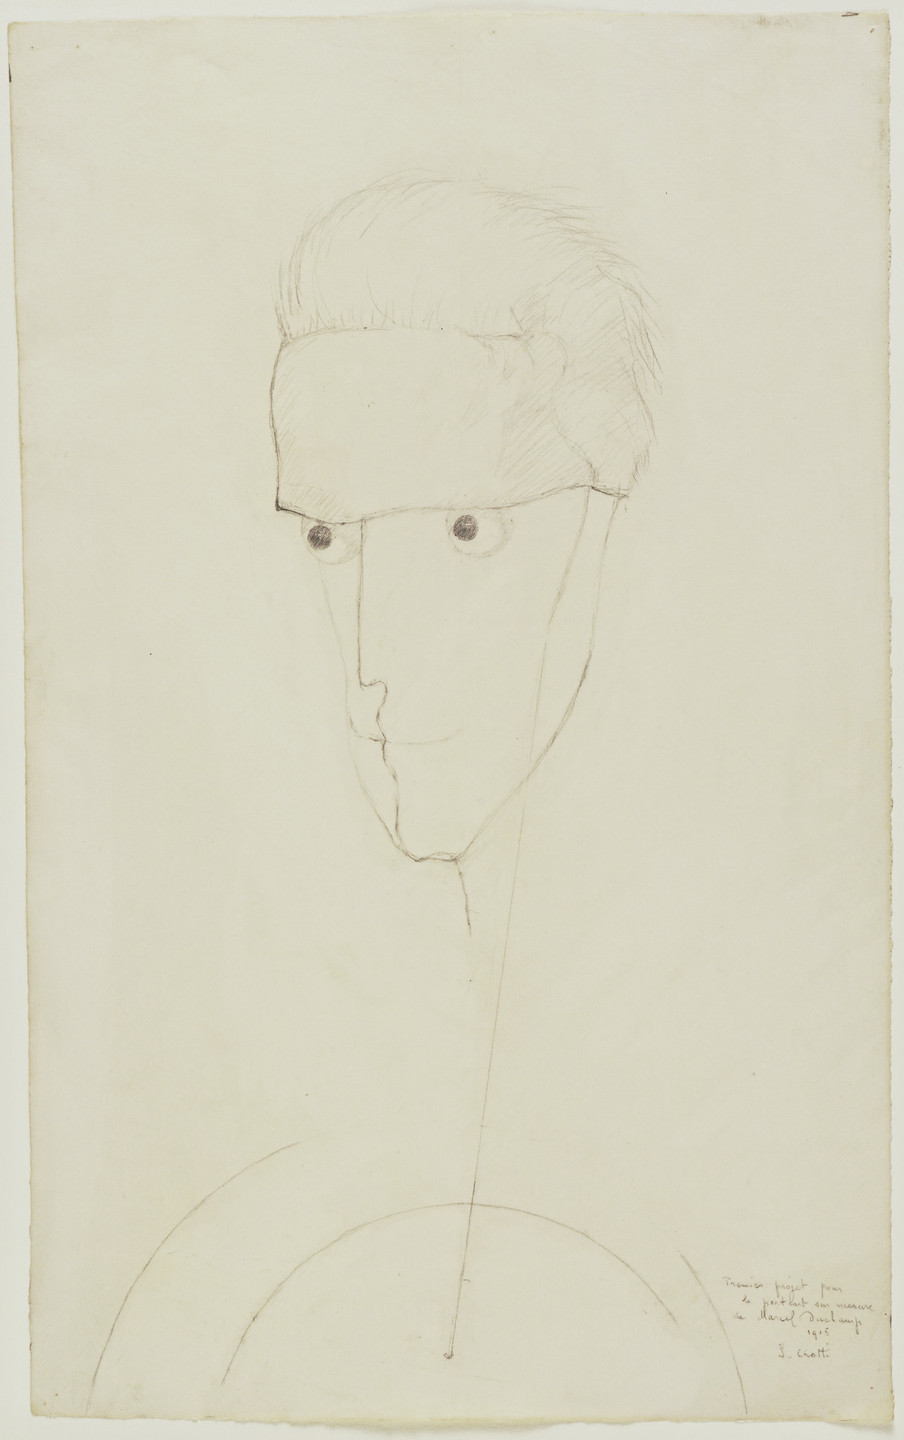 Jean Crotti. Marcel Duchamp. possibly early 1950s (inscribed 1915)